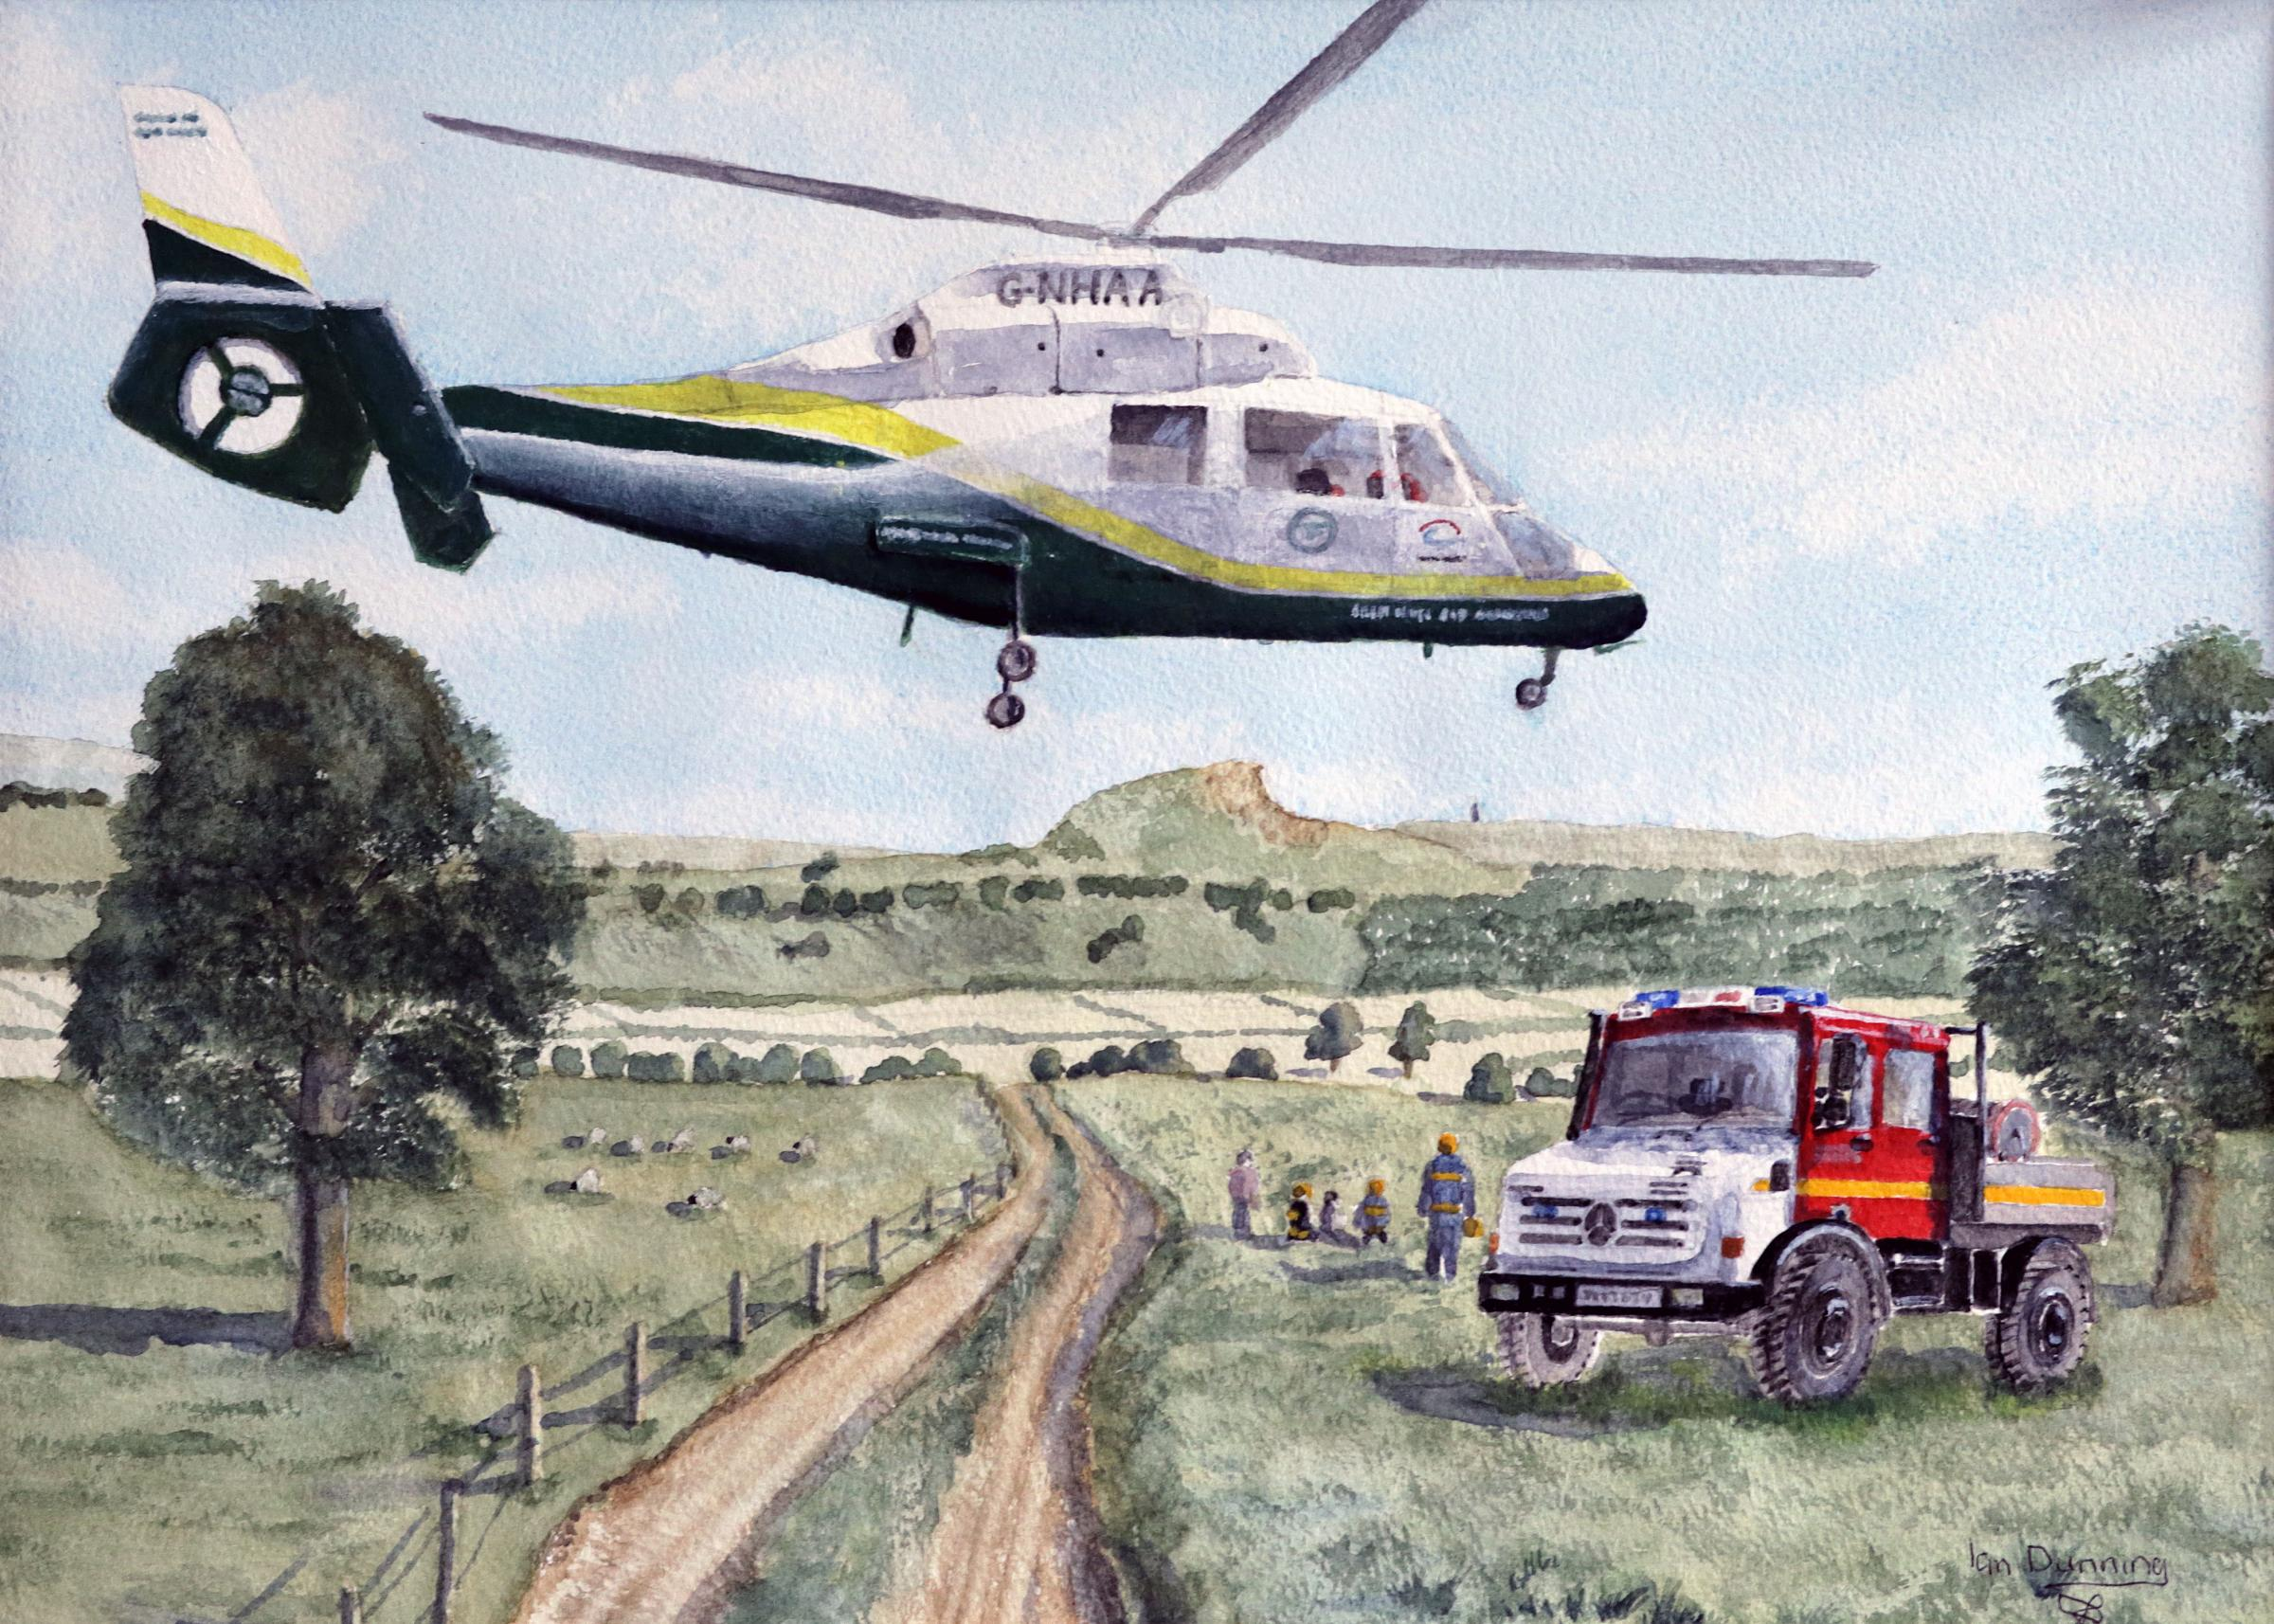 Former fireman donates painting to raise funds for air ambulance